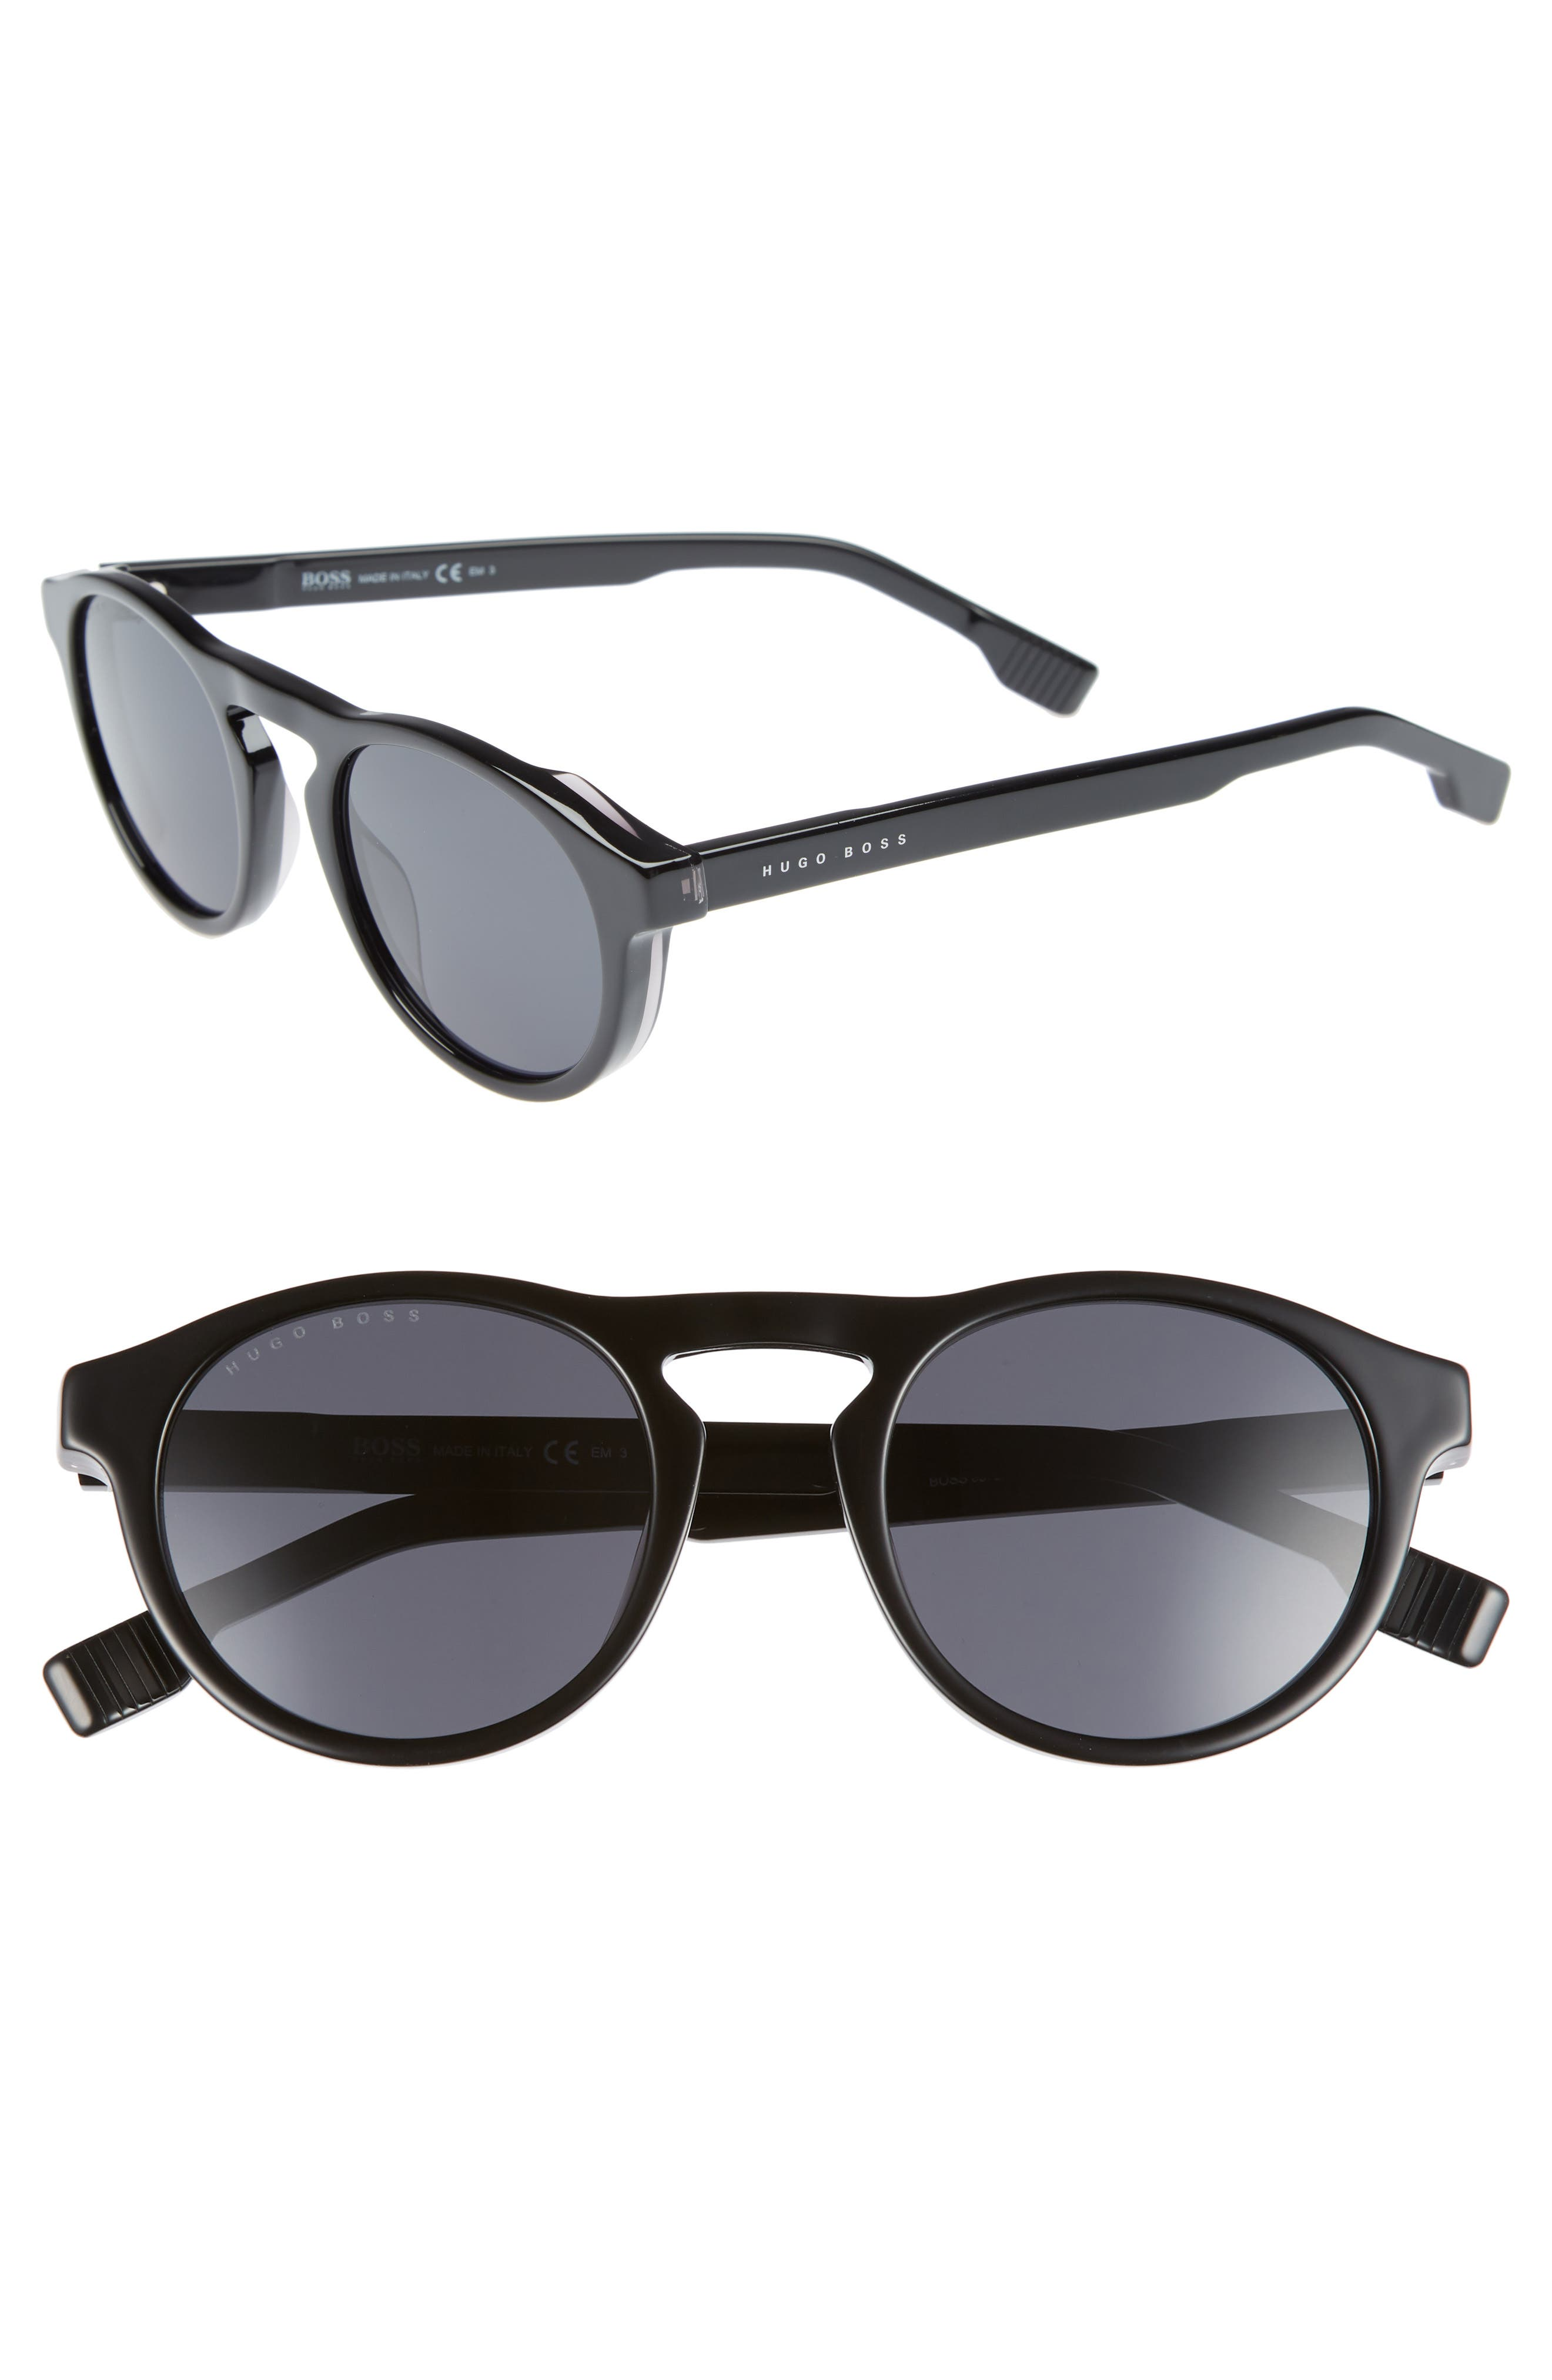 50mm Polarized Round Sunglasses,                             Main thumbnail 1, color,                             Black/ Grey